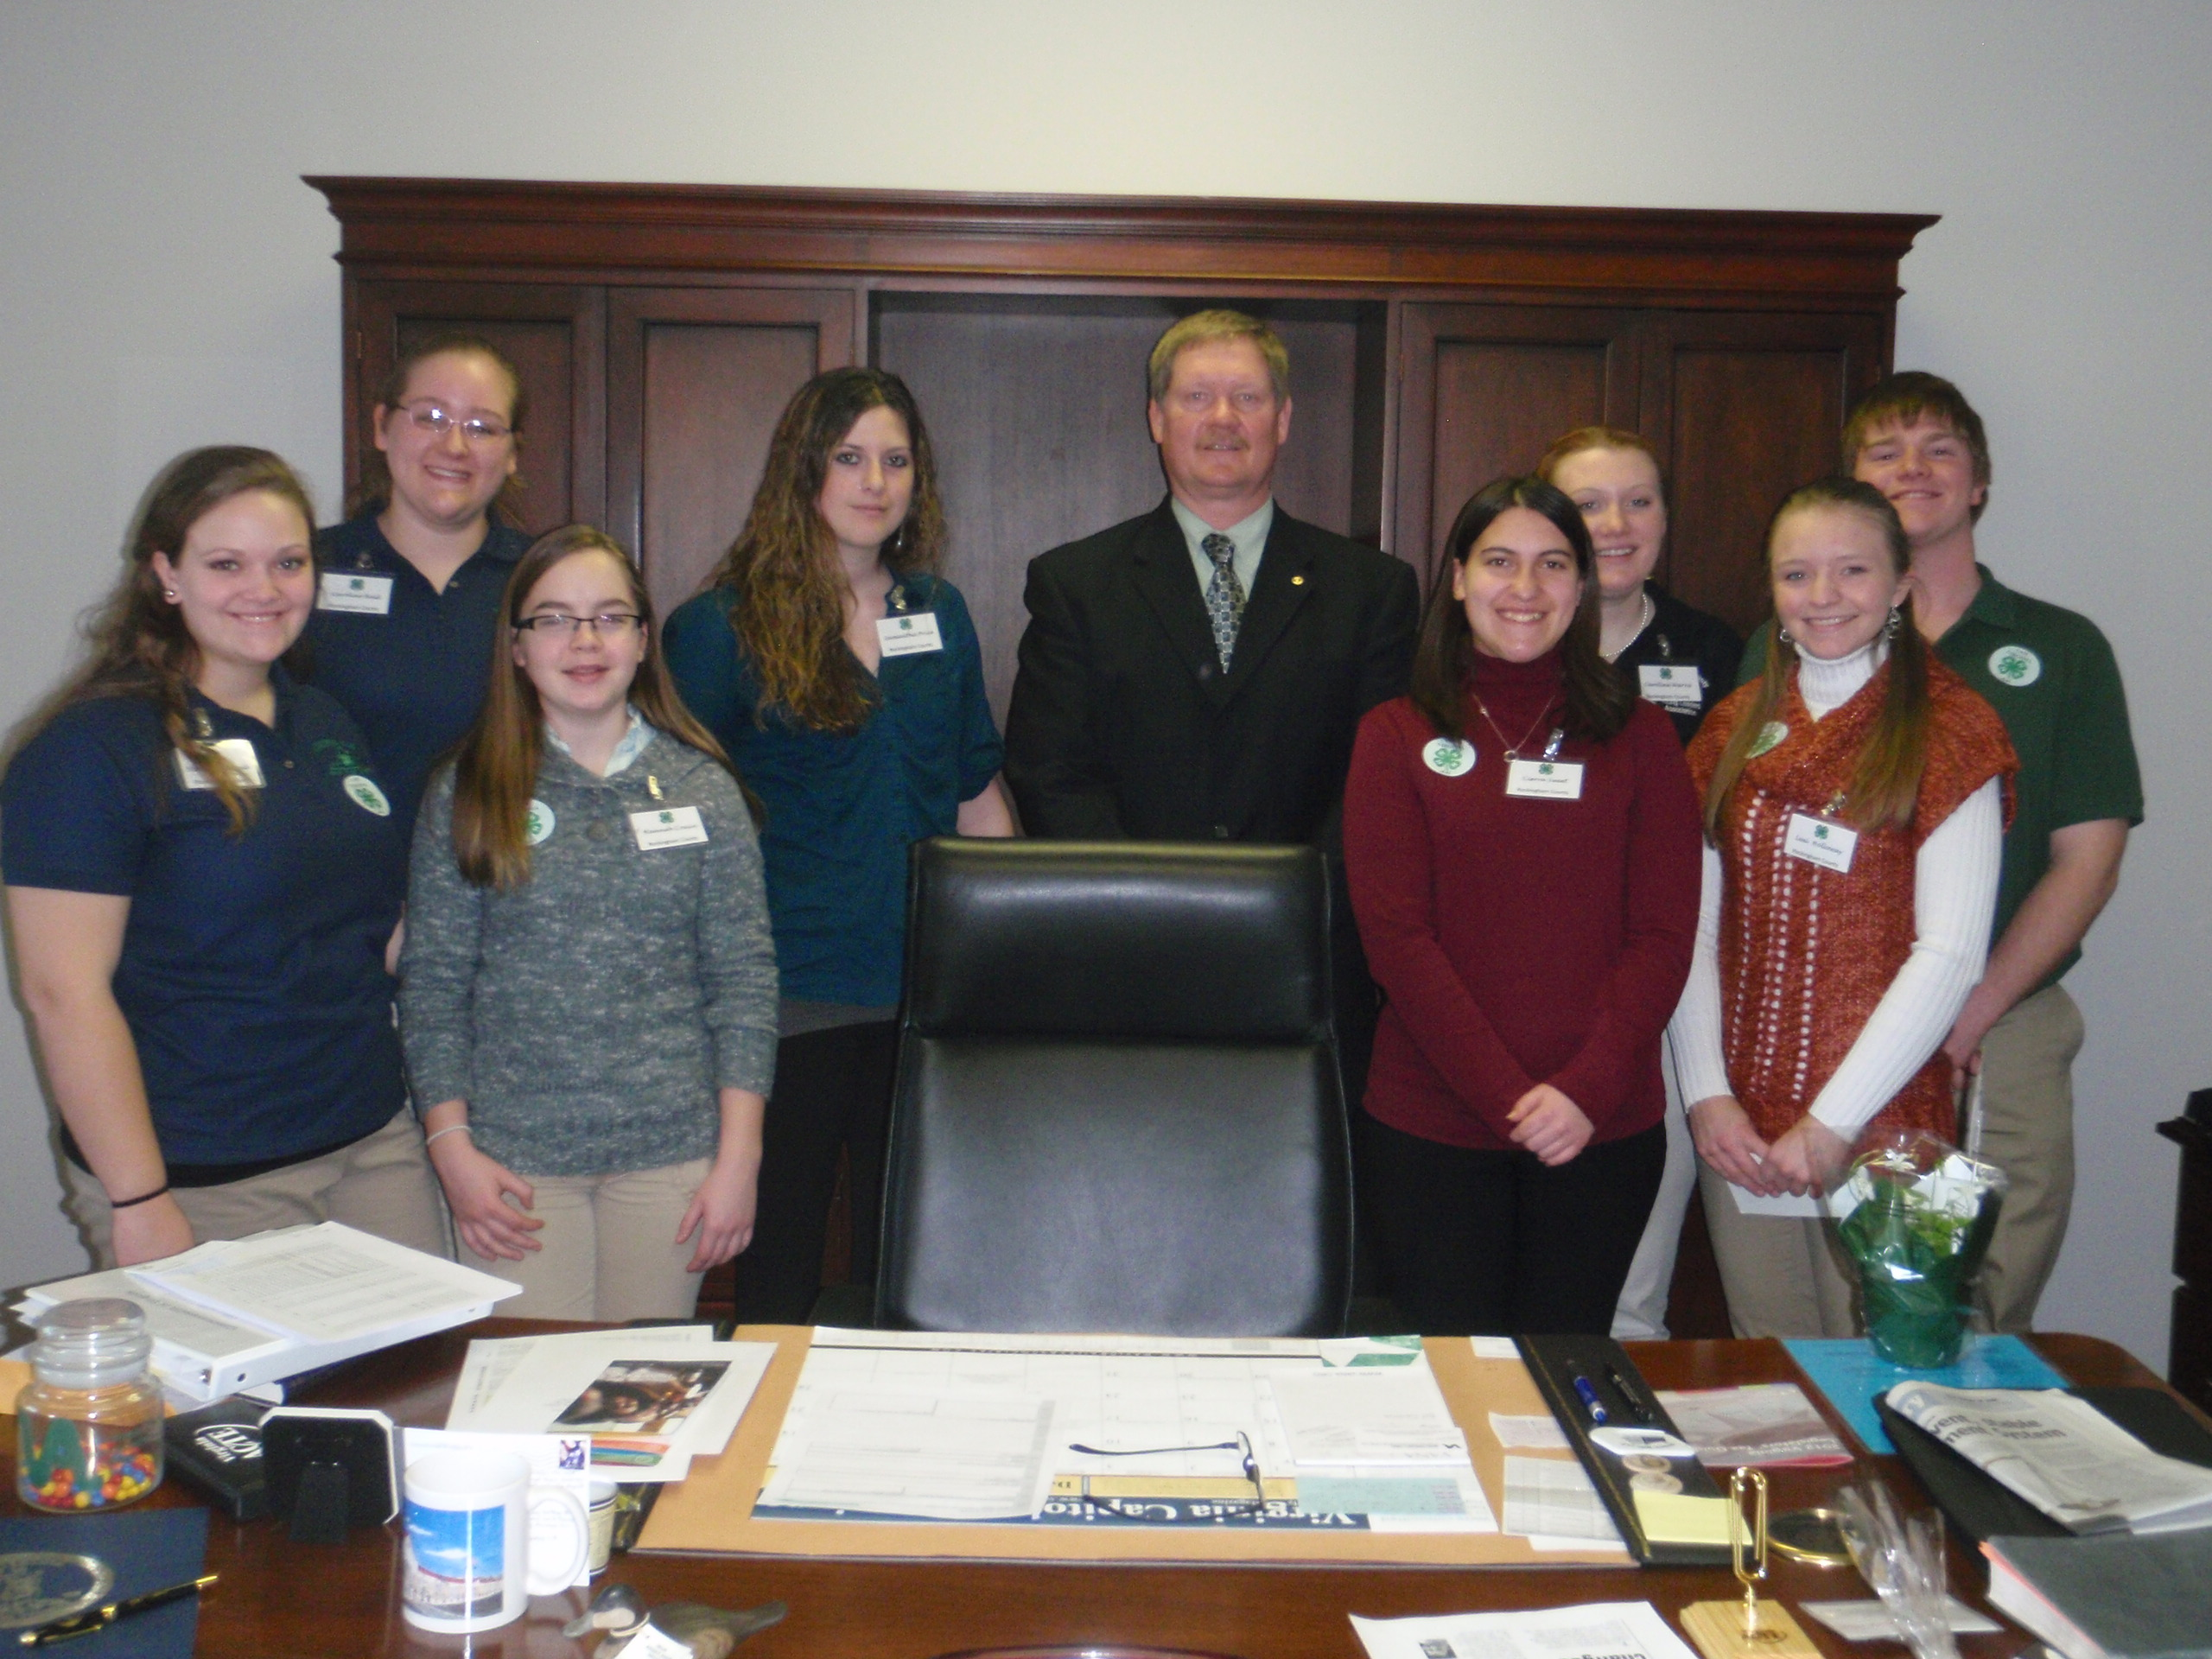 4-H'ers meet with a state legislator.